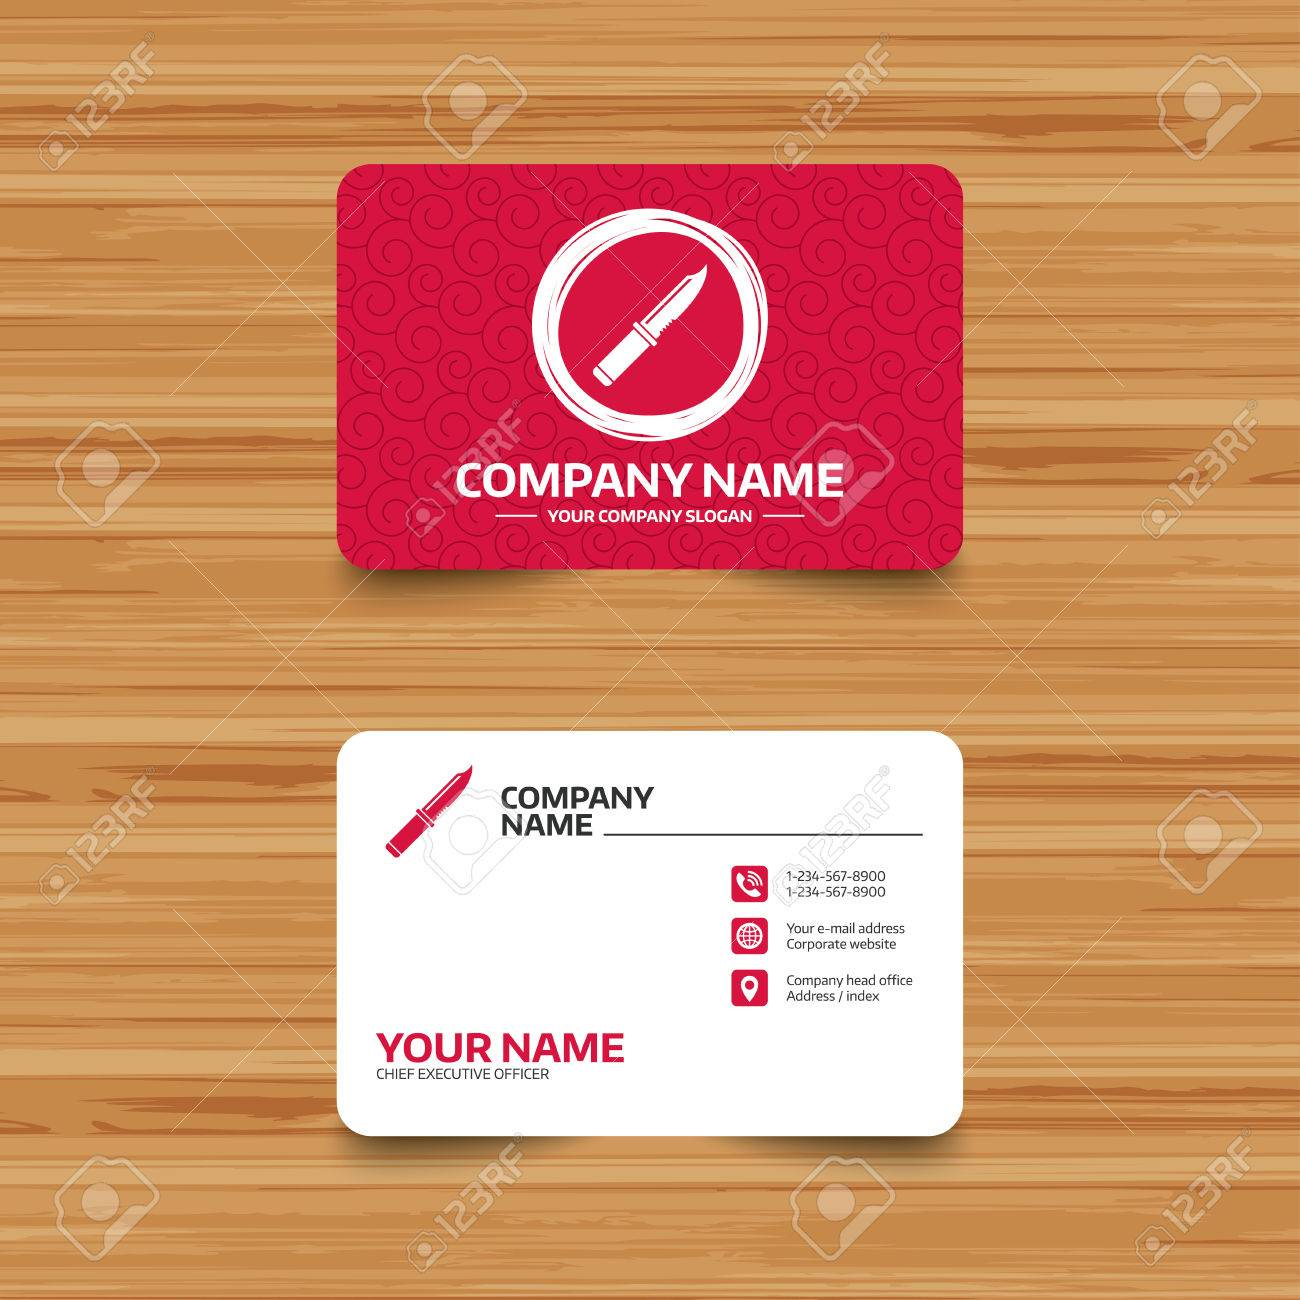 Business card template with texture knife sign icon edged weapons business card template with texture knife sign icon edged weapons symbol stab or colourmoves